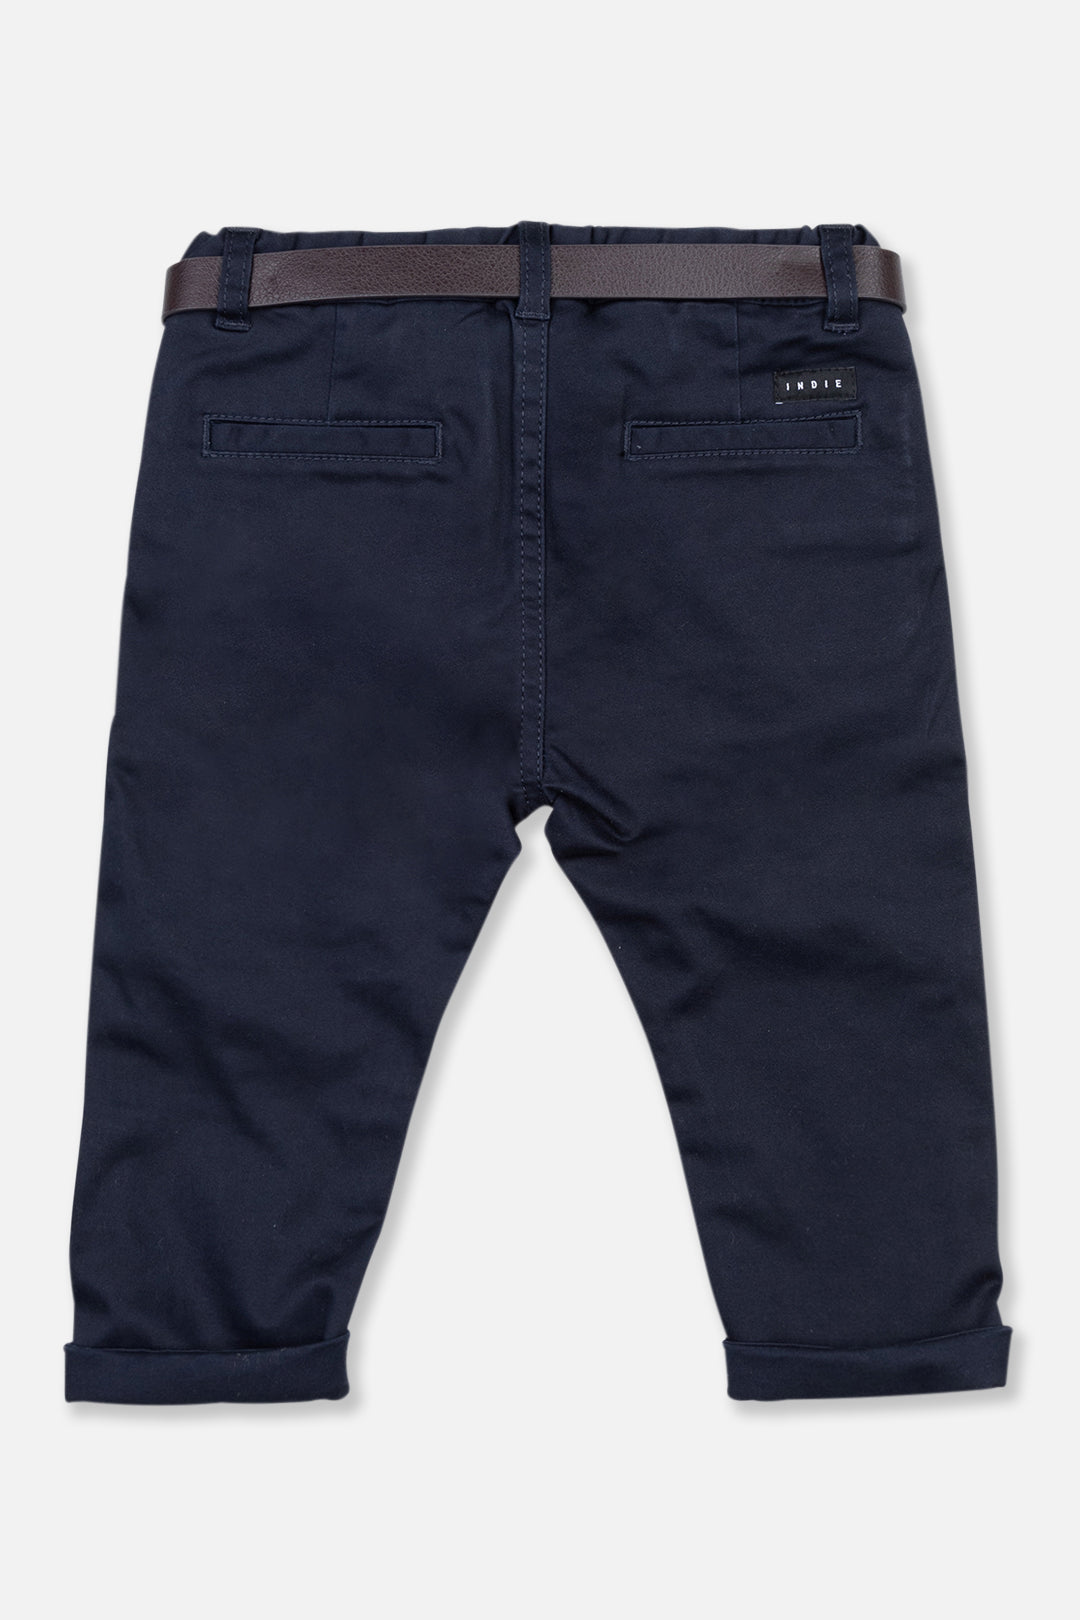 Cuba Stretch Chino - Navy